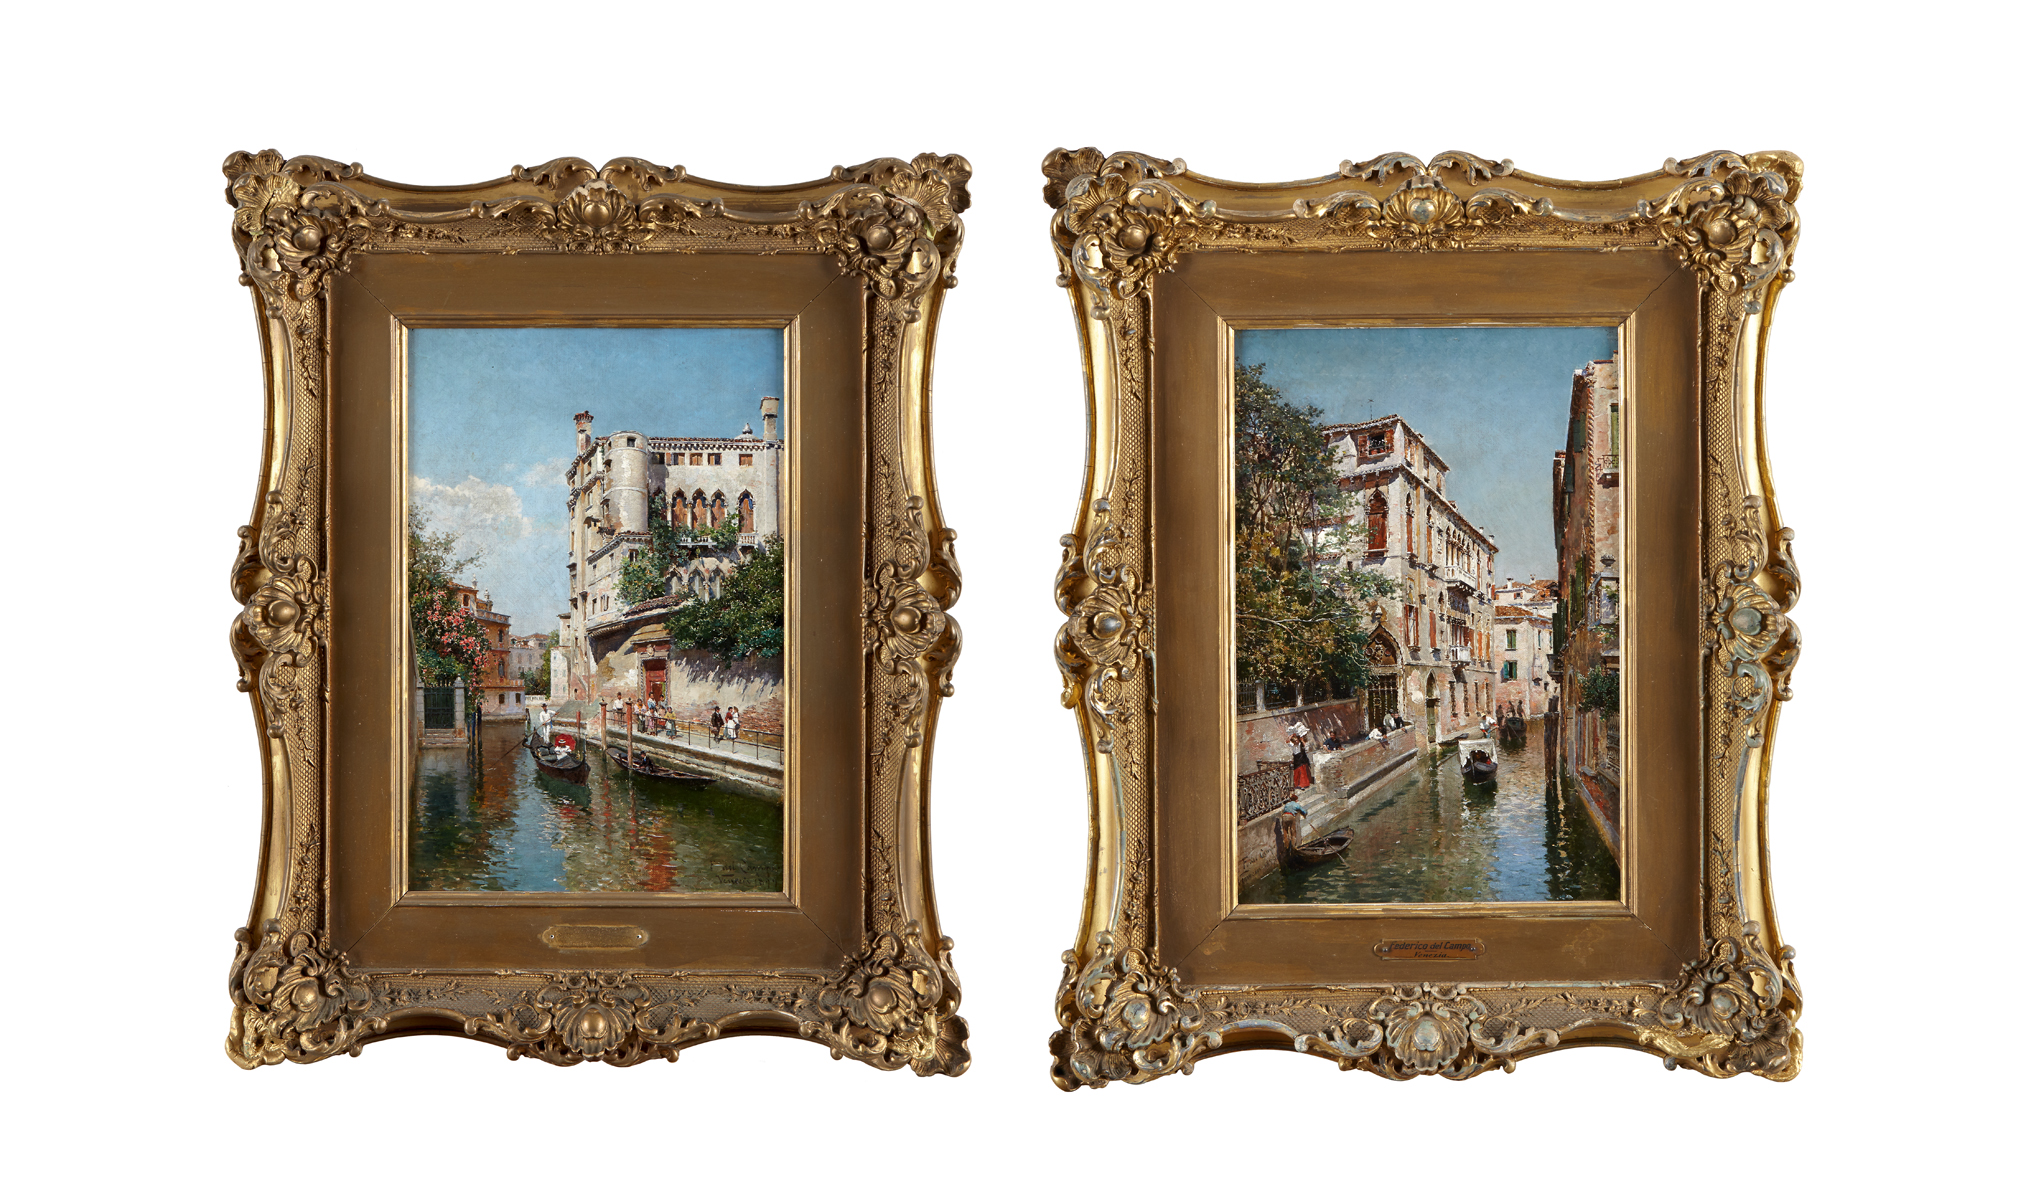 Federico Del Campo  (Peruvian 1837–1927), Venetian Canals; A pair, Both signed, located and dated 'F. del Campo/Venezia/1899' (one bottom right, the other bottom left), pair oils on canvas  Each: 13 7/8 x 9 1/4 in. (35.2 x 23.5cm), $30,000-50,000